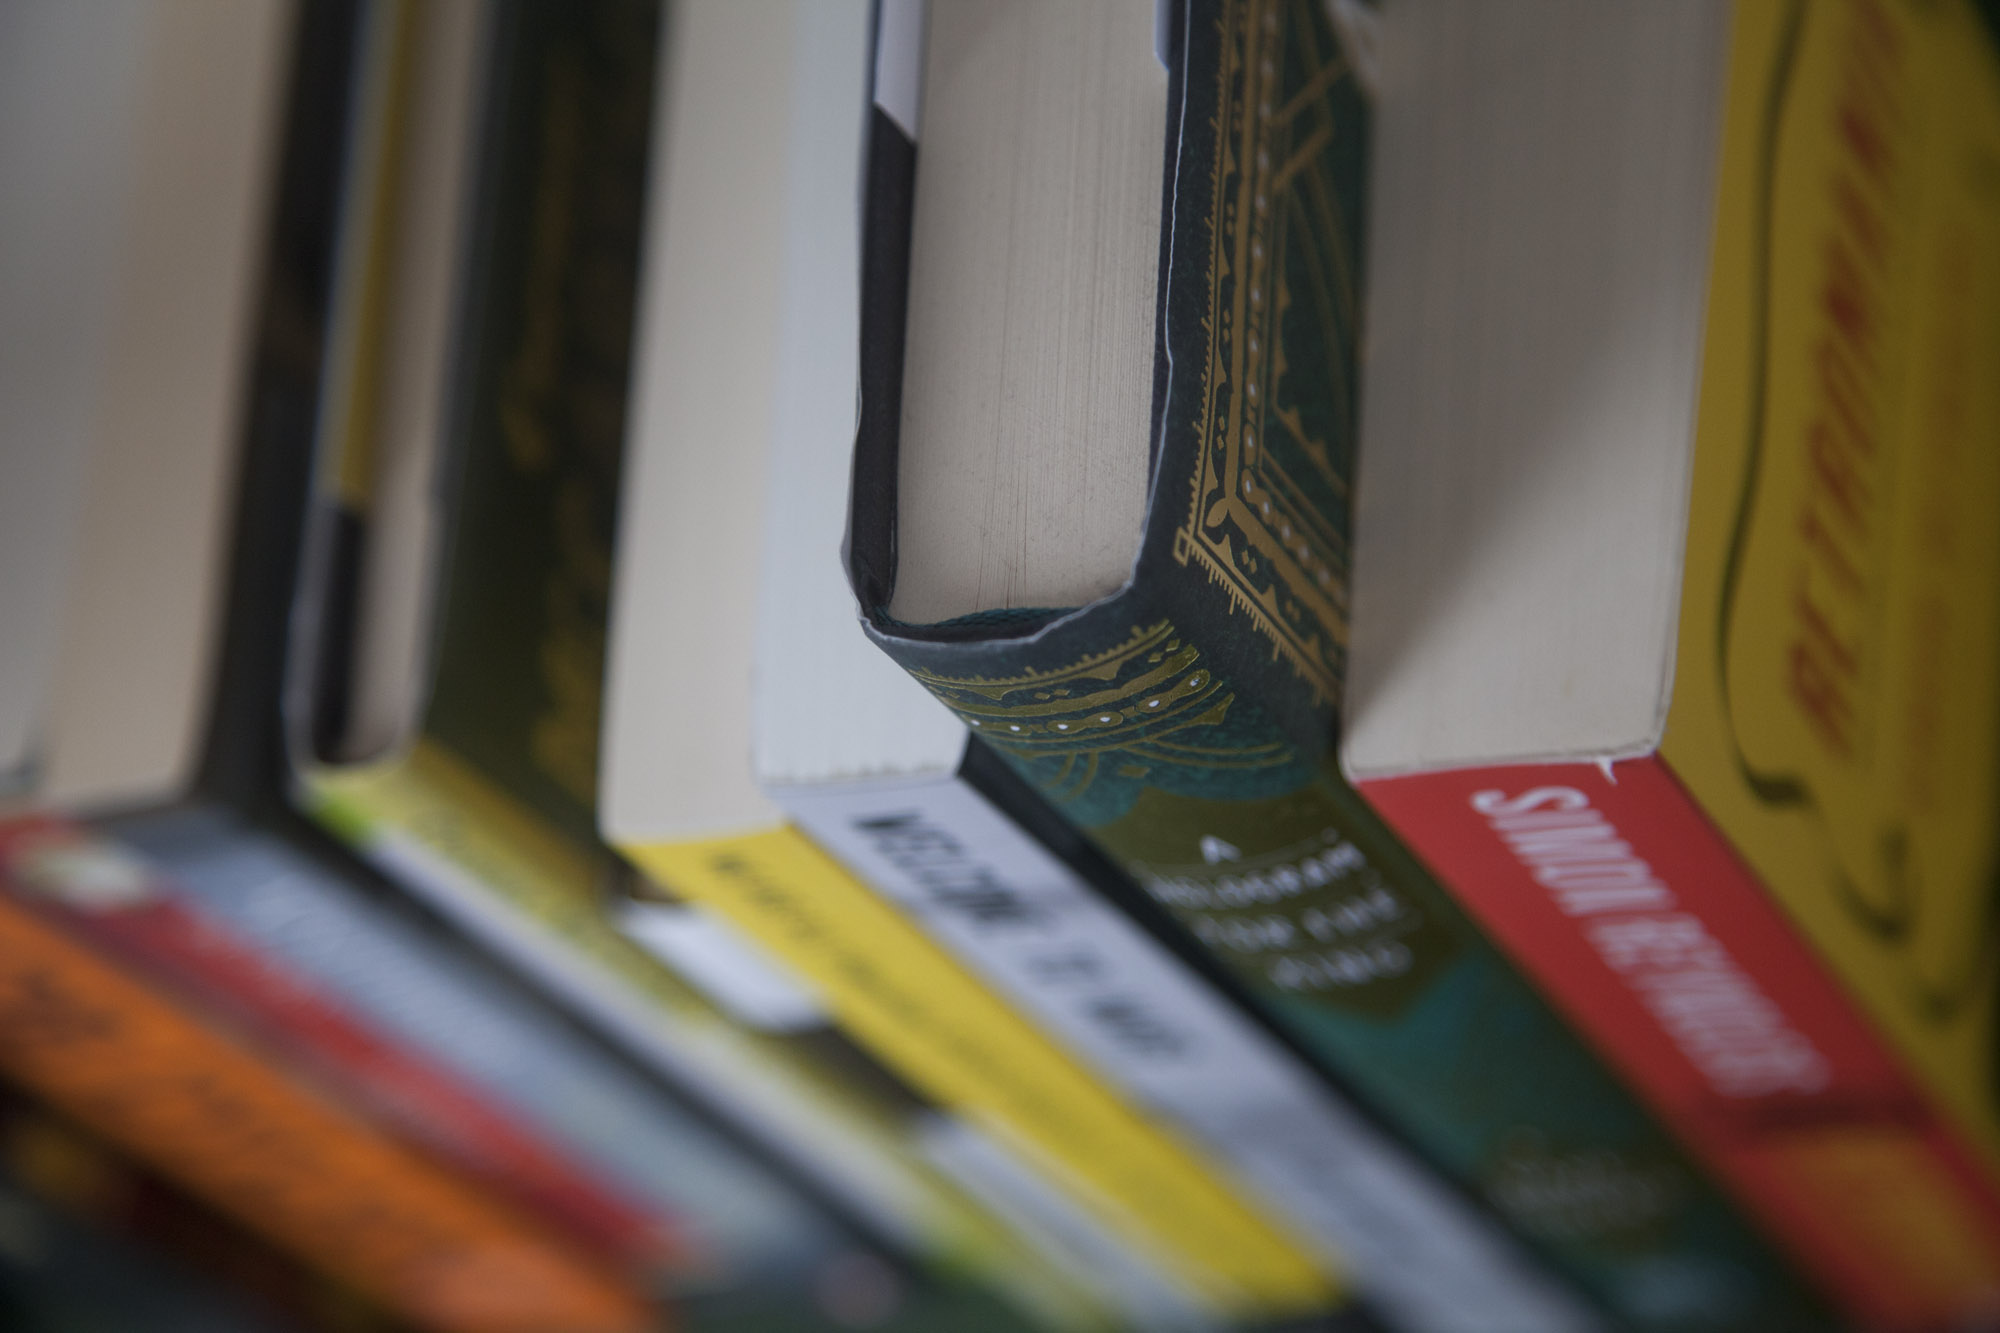 pop-up library books